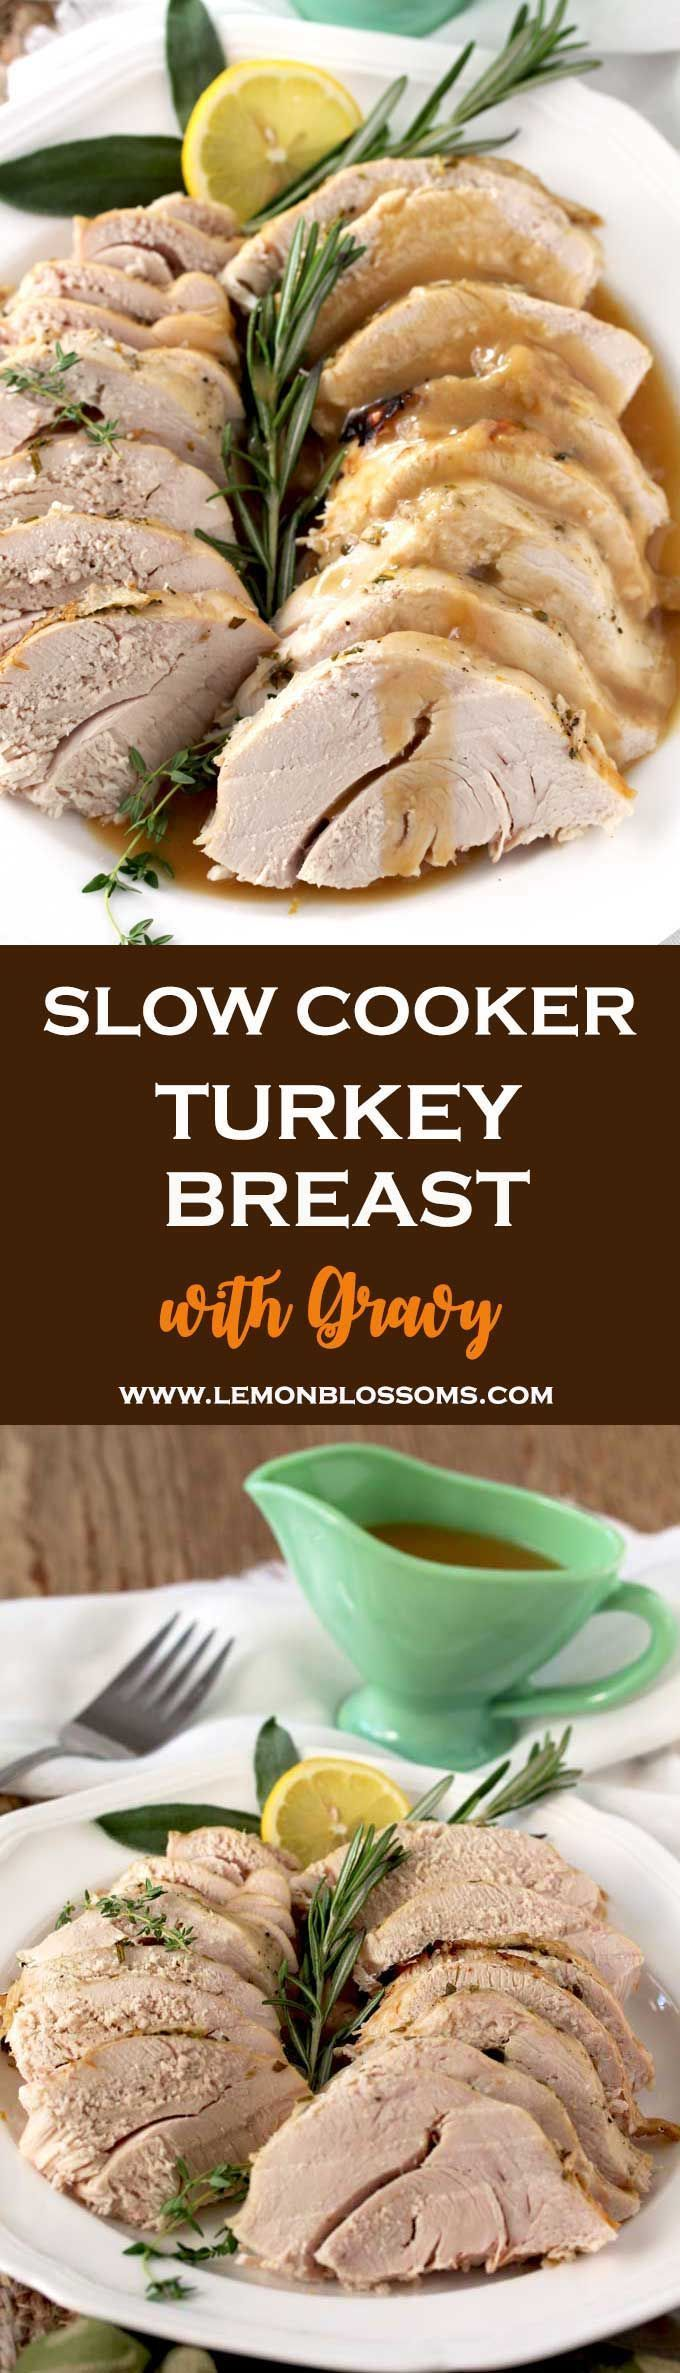 This Slow Cooker Turkey Breast with Gravy is the easiest way to cook a juicy, tender and delicious turkey without any hassle! The juices collected from cooking the turkey make the most wonderful gravy! Perfect for smaller holiday gatherings or for when you want to have perfectly cooked turkey ready for lunches, salads and sandwiches. #slowcooker #crockpot #turkey #gravy via @lmnblossoms